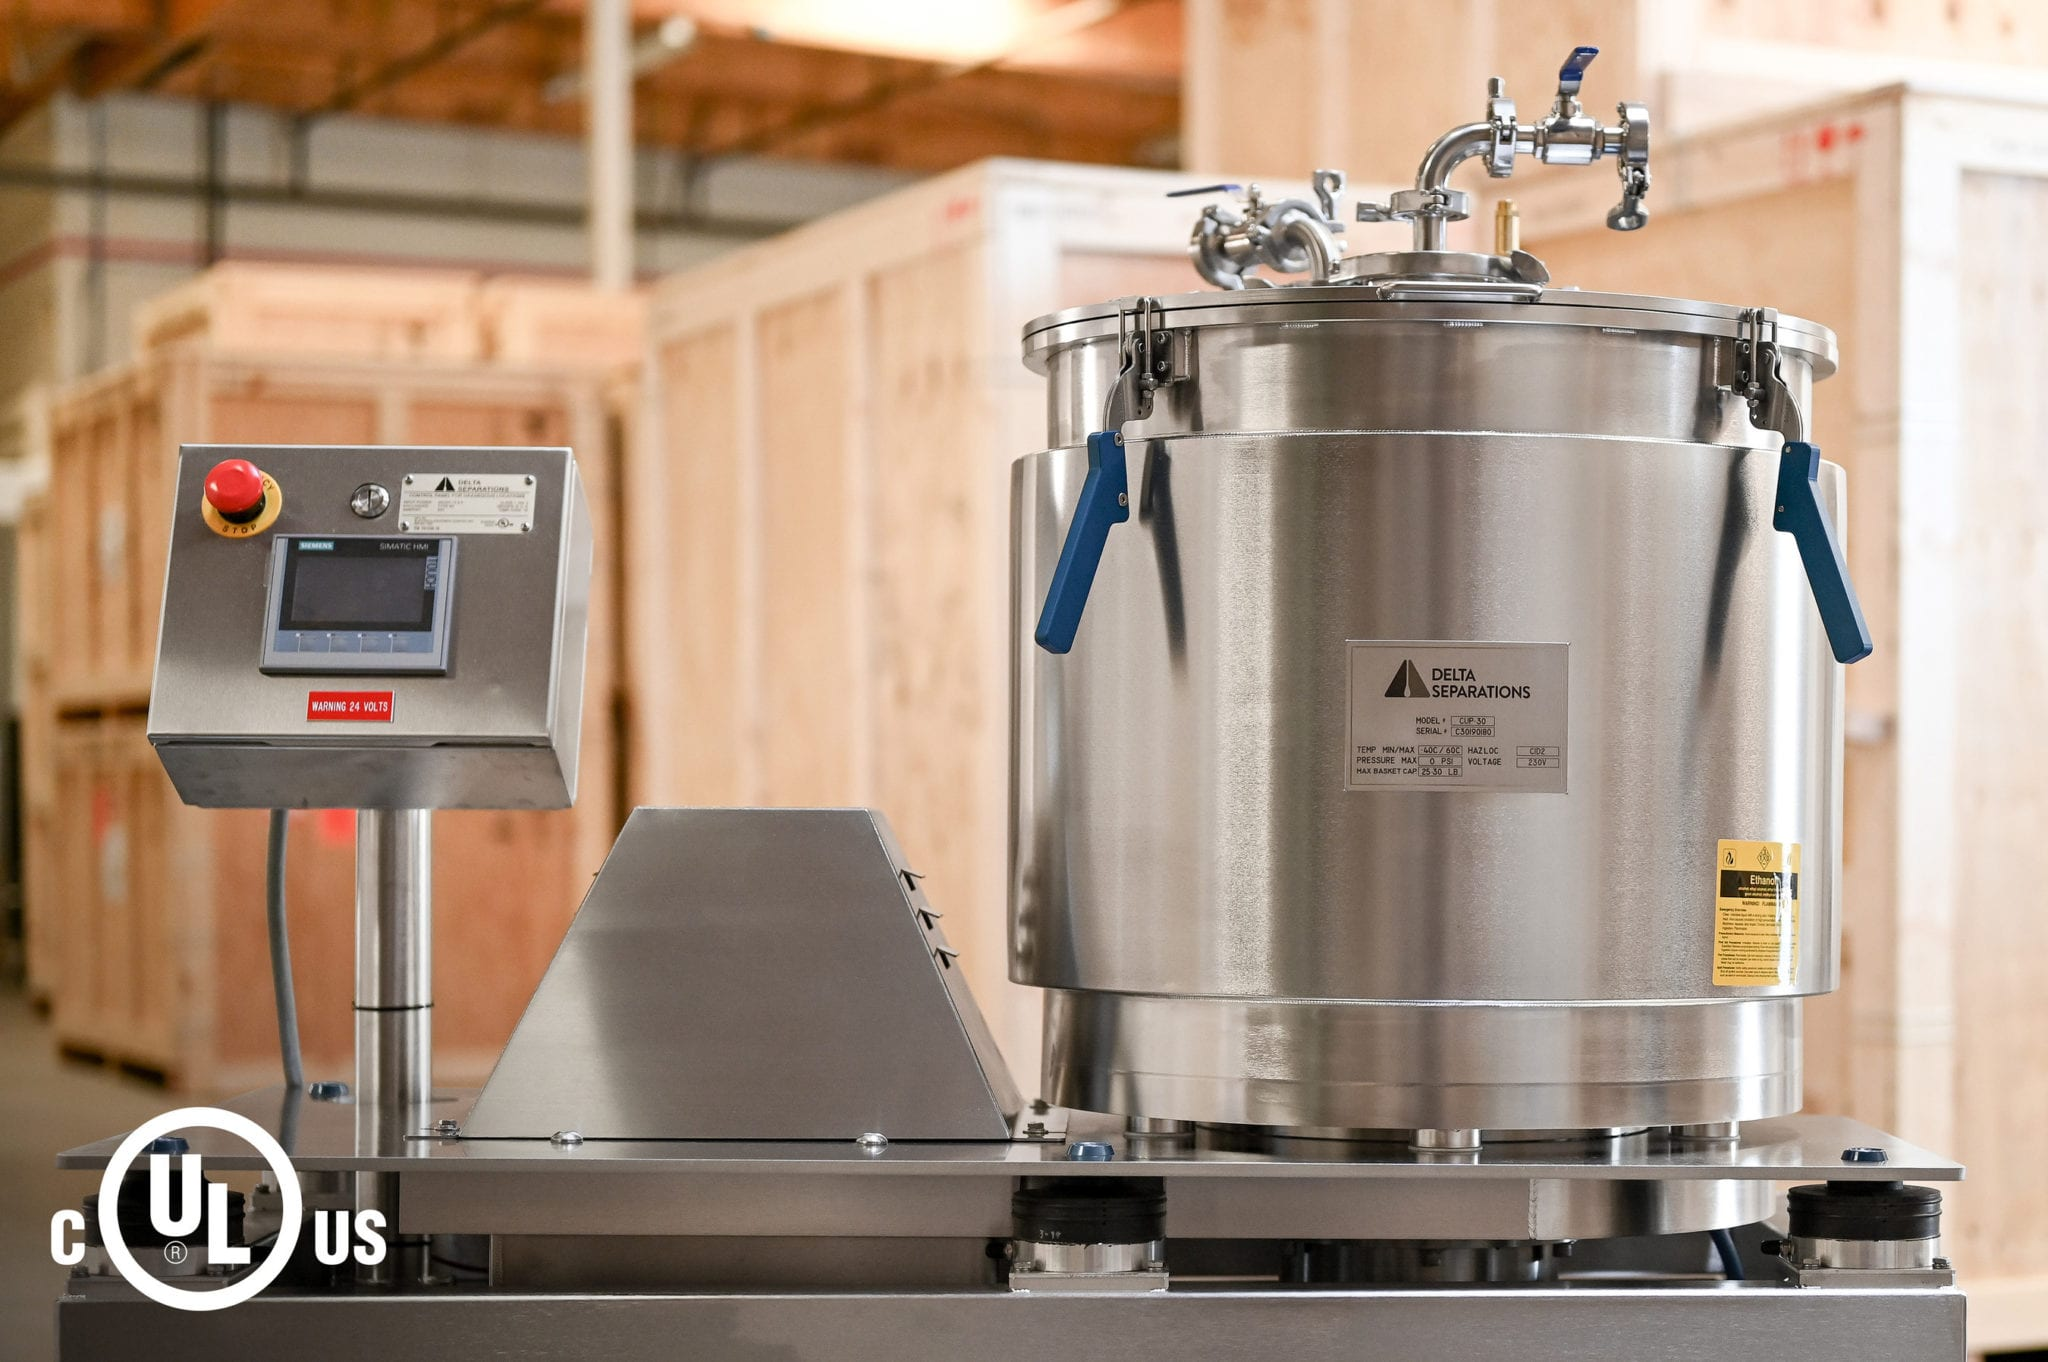 cannabis extraction safety standards - Delta Separations UL certified extractor